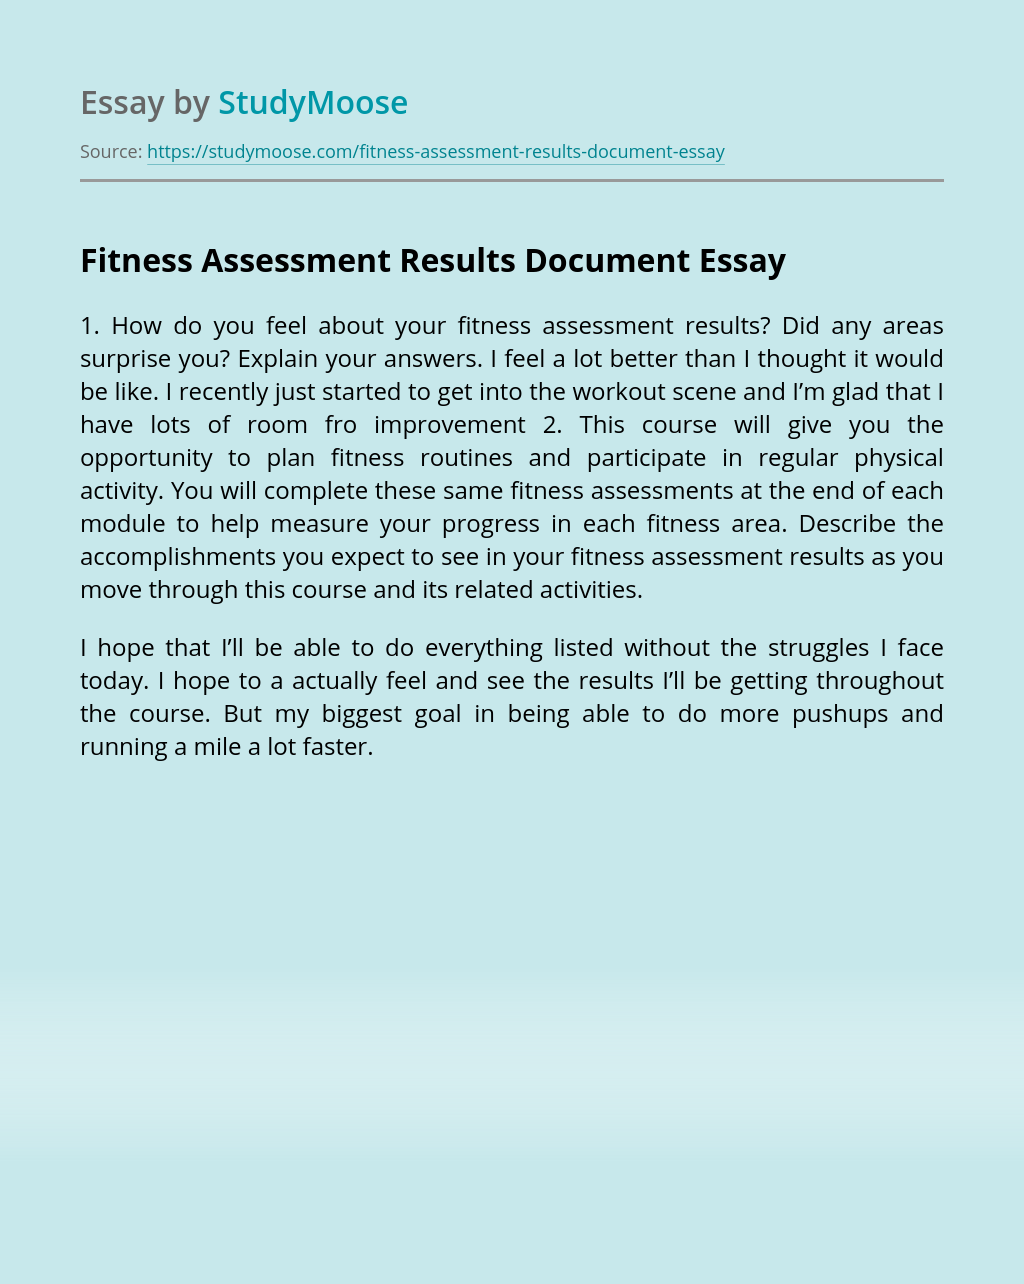 Fitness Assessment Results Document